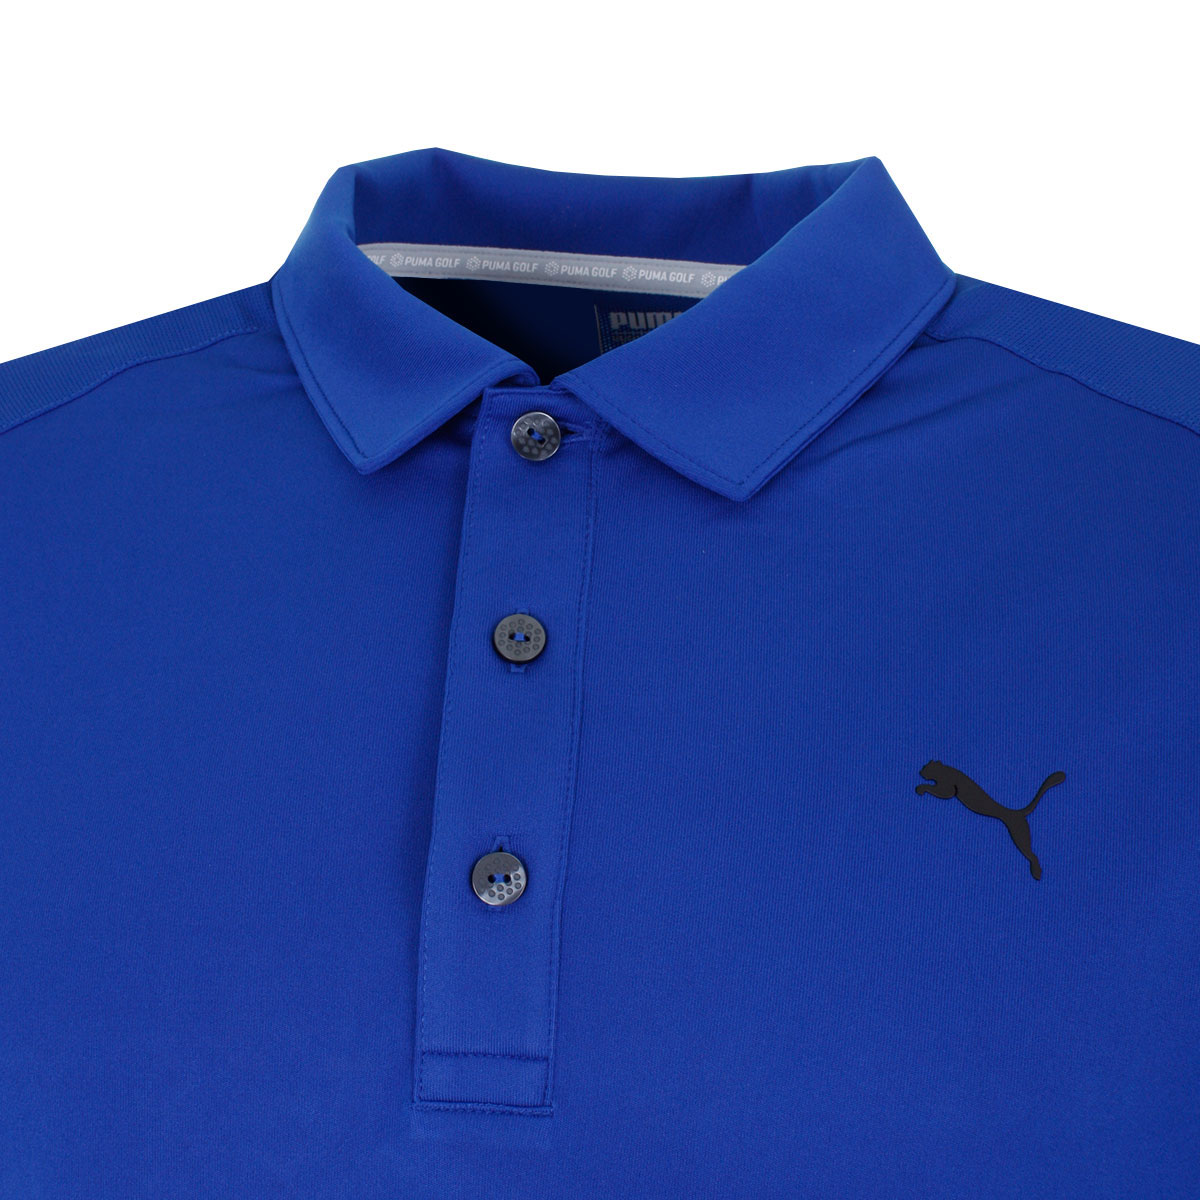 Puma-Golf-Mens-Essential-Pounce-Polo-Shirt-DryCell-Lightweight-Tech-43-OFF-RRP thumbnail 31